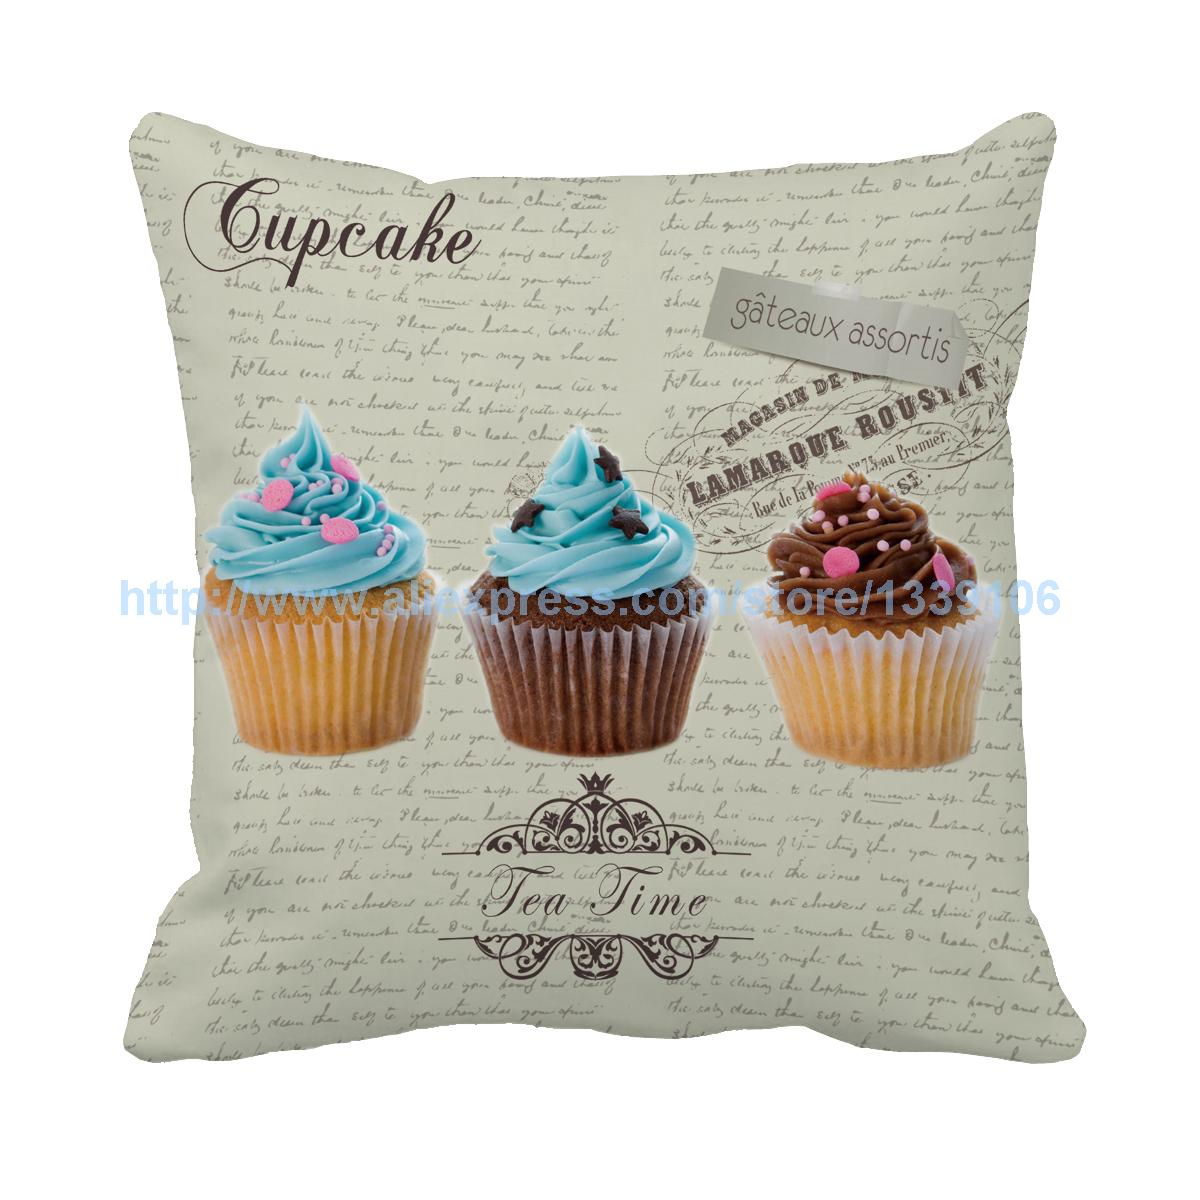 Hot Europe style afternoon tea cupcake print custom square design cushion home decor almofada decorative pillow inner sofa bed